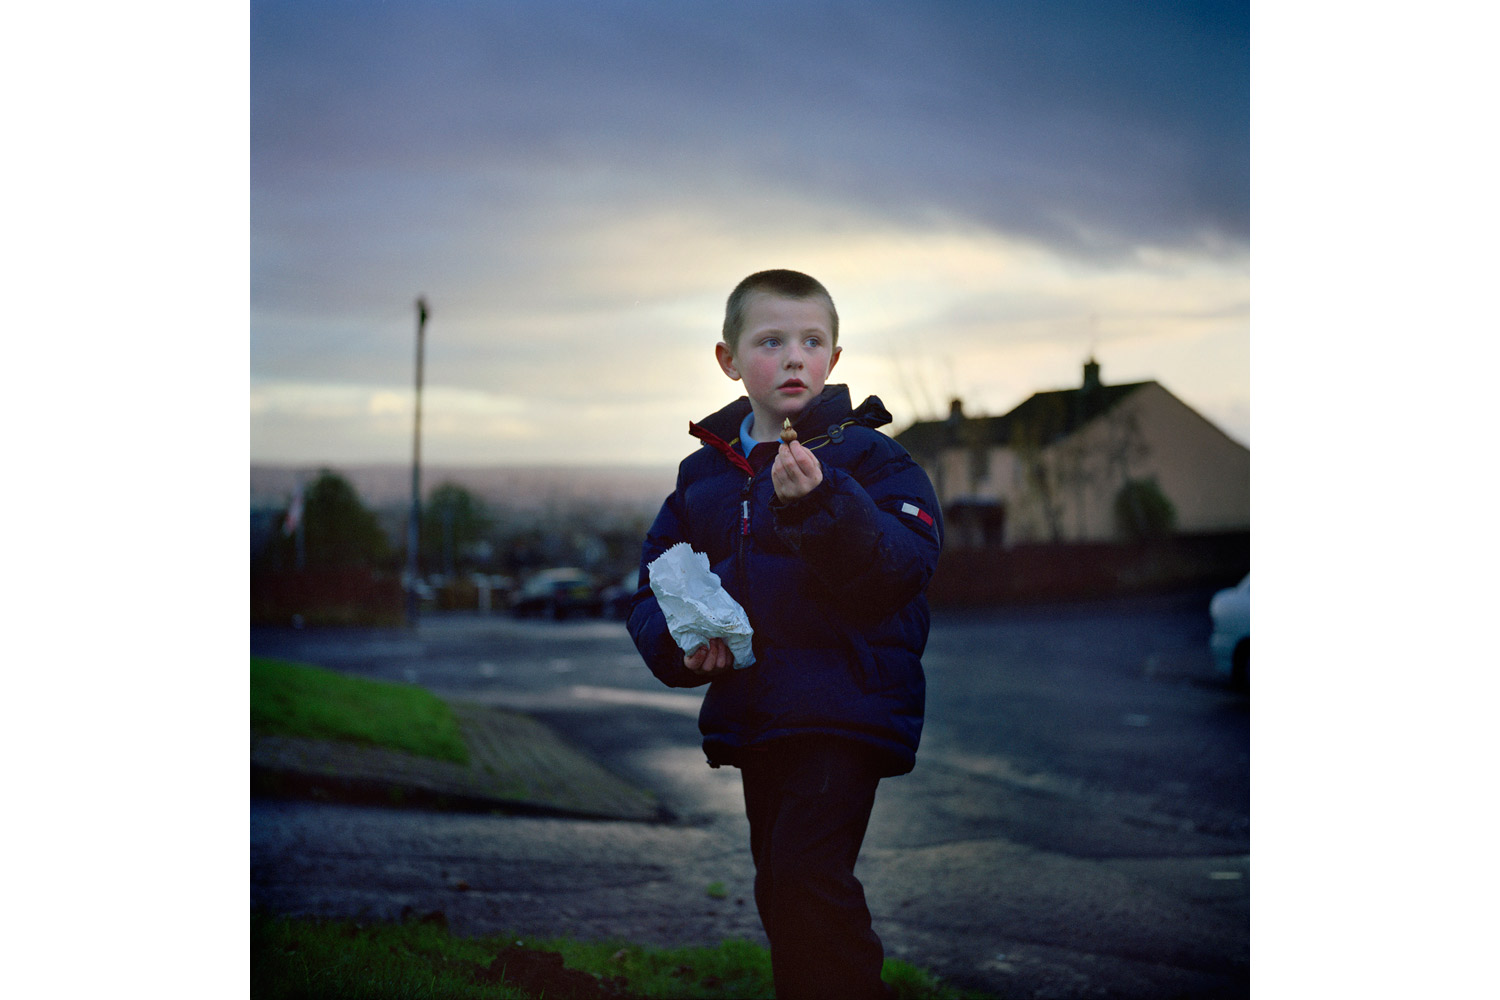 A young boy in Ballysillan estate plants flower bulbs as part of the final Re-Imaging Communities Project effort in the area. In Ballysillan, many locals feared that the removal of traditional murals meant having their culture and memories stripped away. After careful delegation, new sculptures, murals and gardens have been designed and installed by residents.